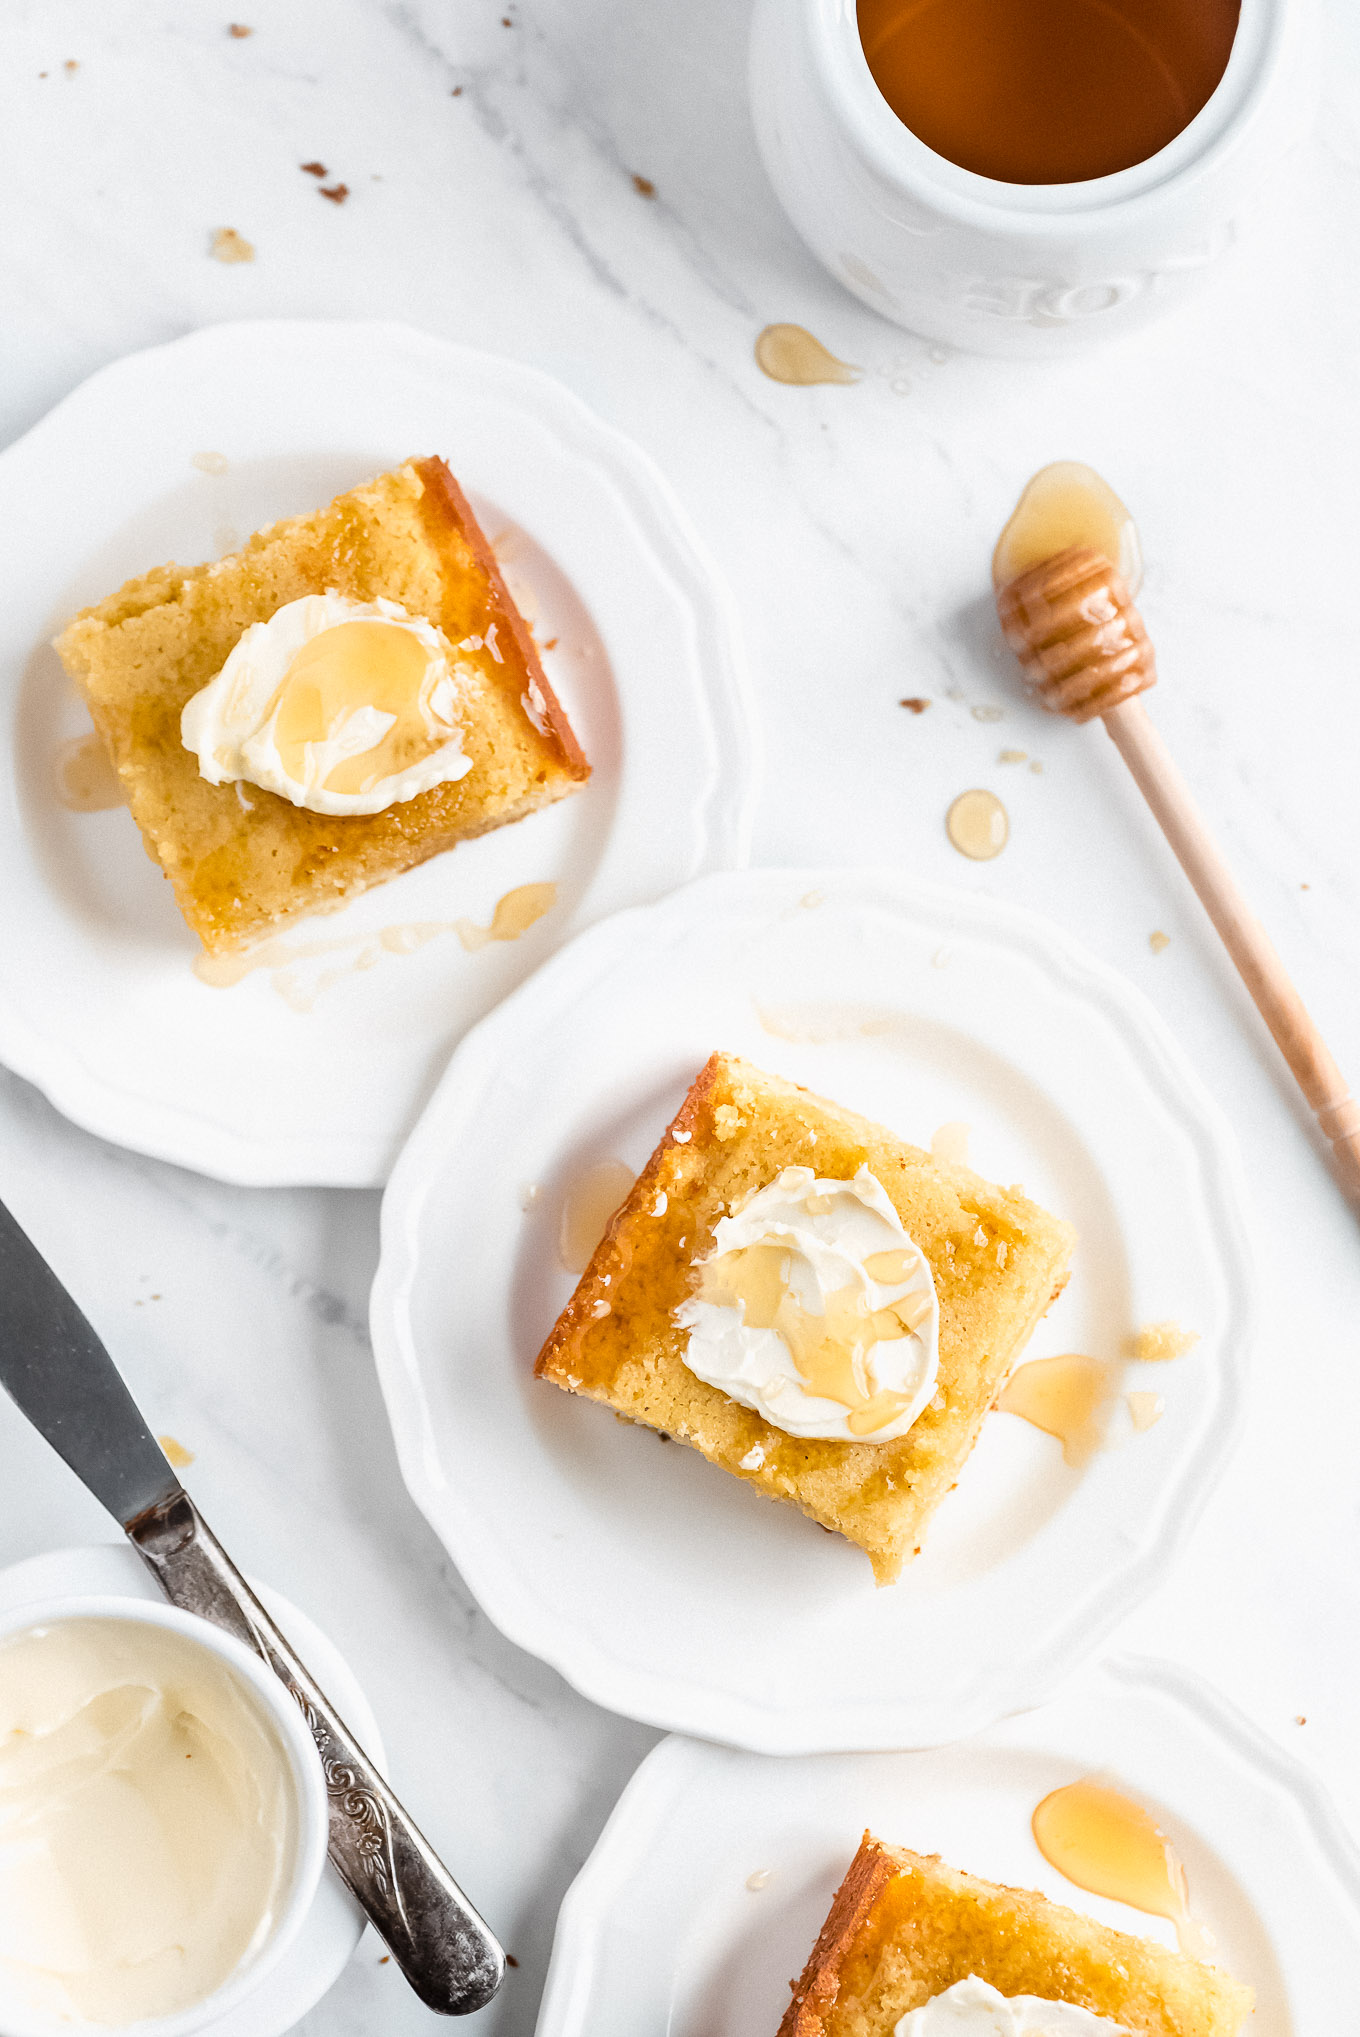 Square pieces of cornbread on plates topped with butter and drizzled with honey.